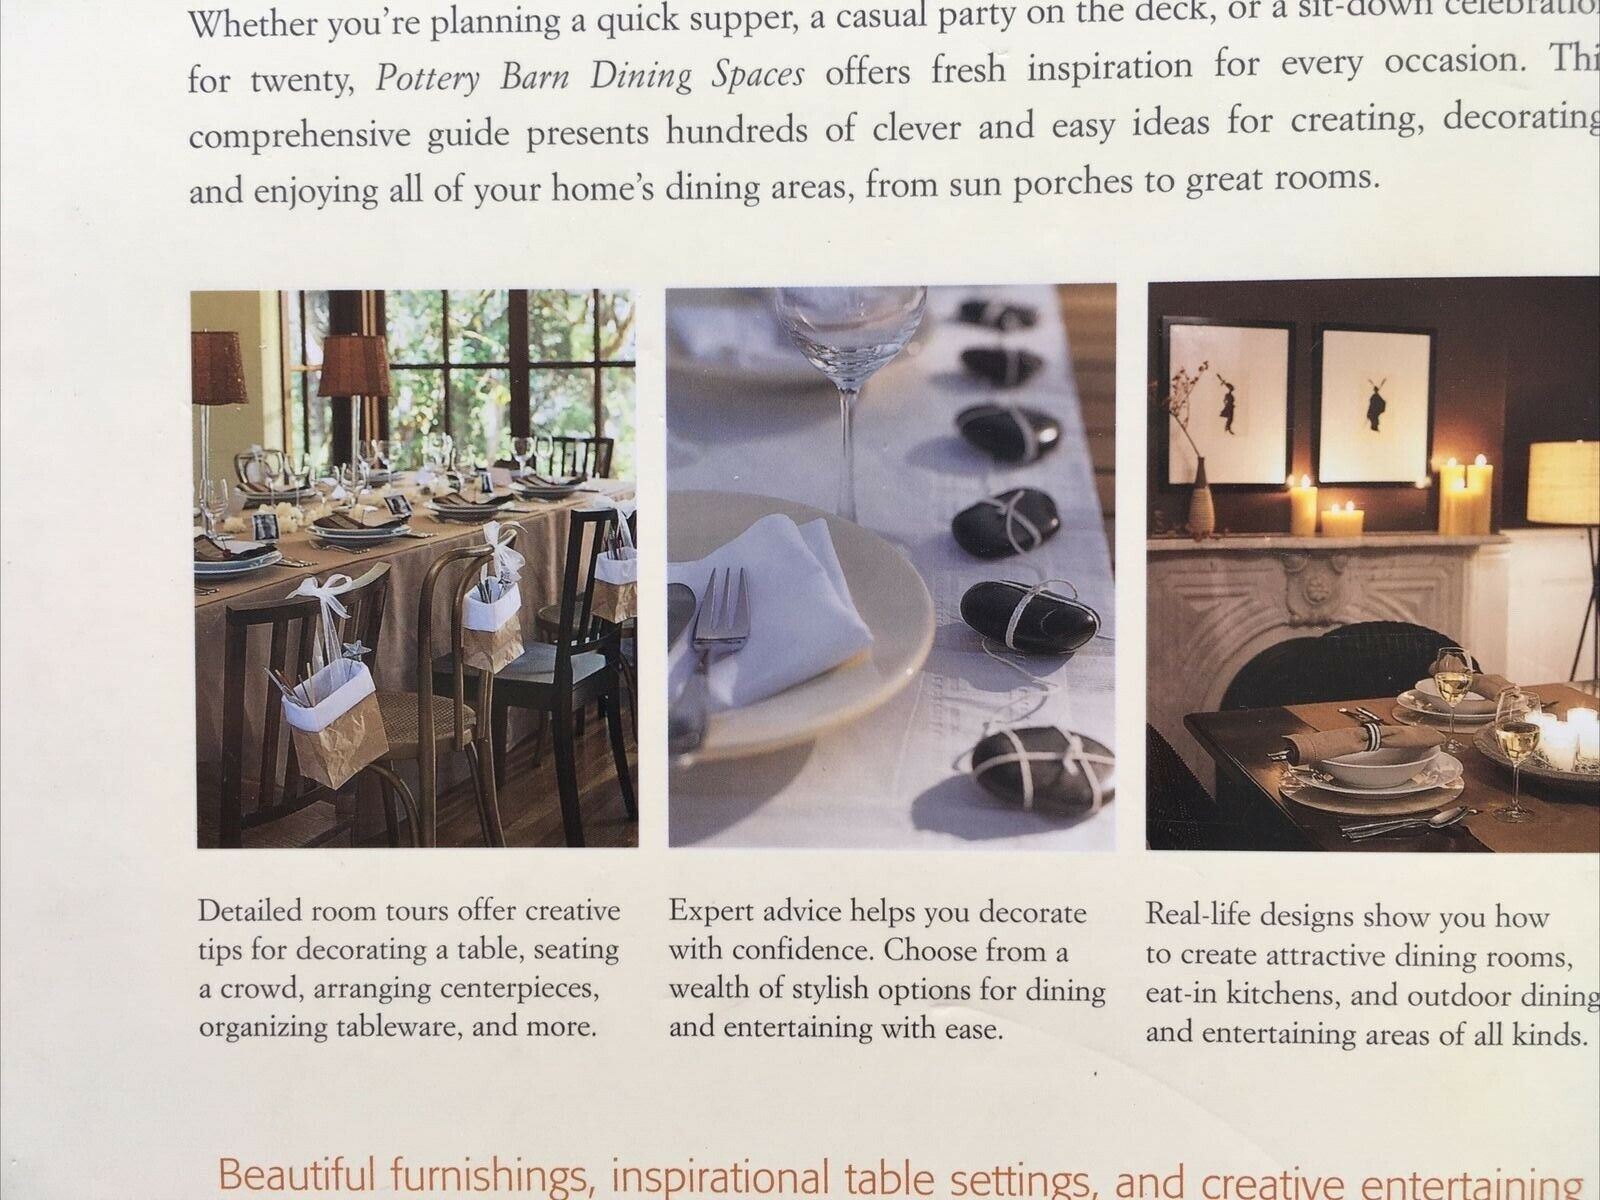 Pottery Barn Dining Spaces By Pottery Barn Editors 2004 Hardcover For Sale Online Ebay